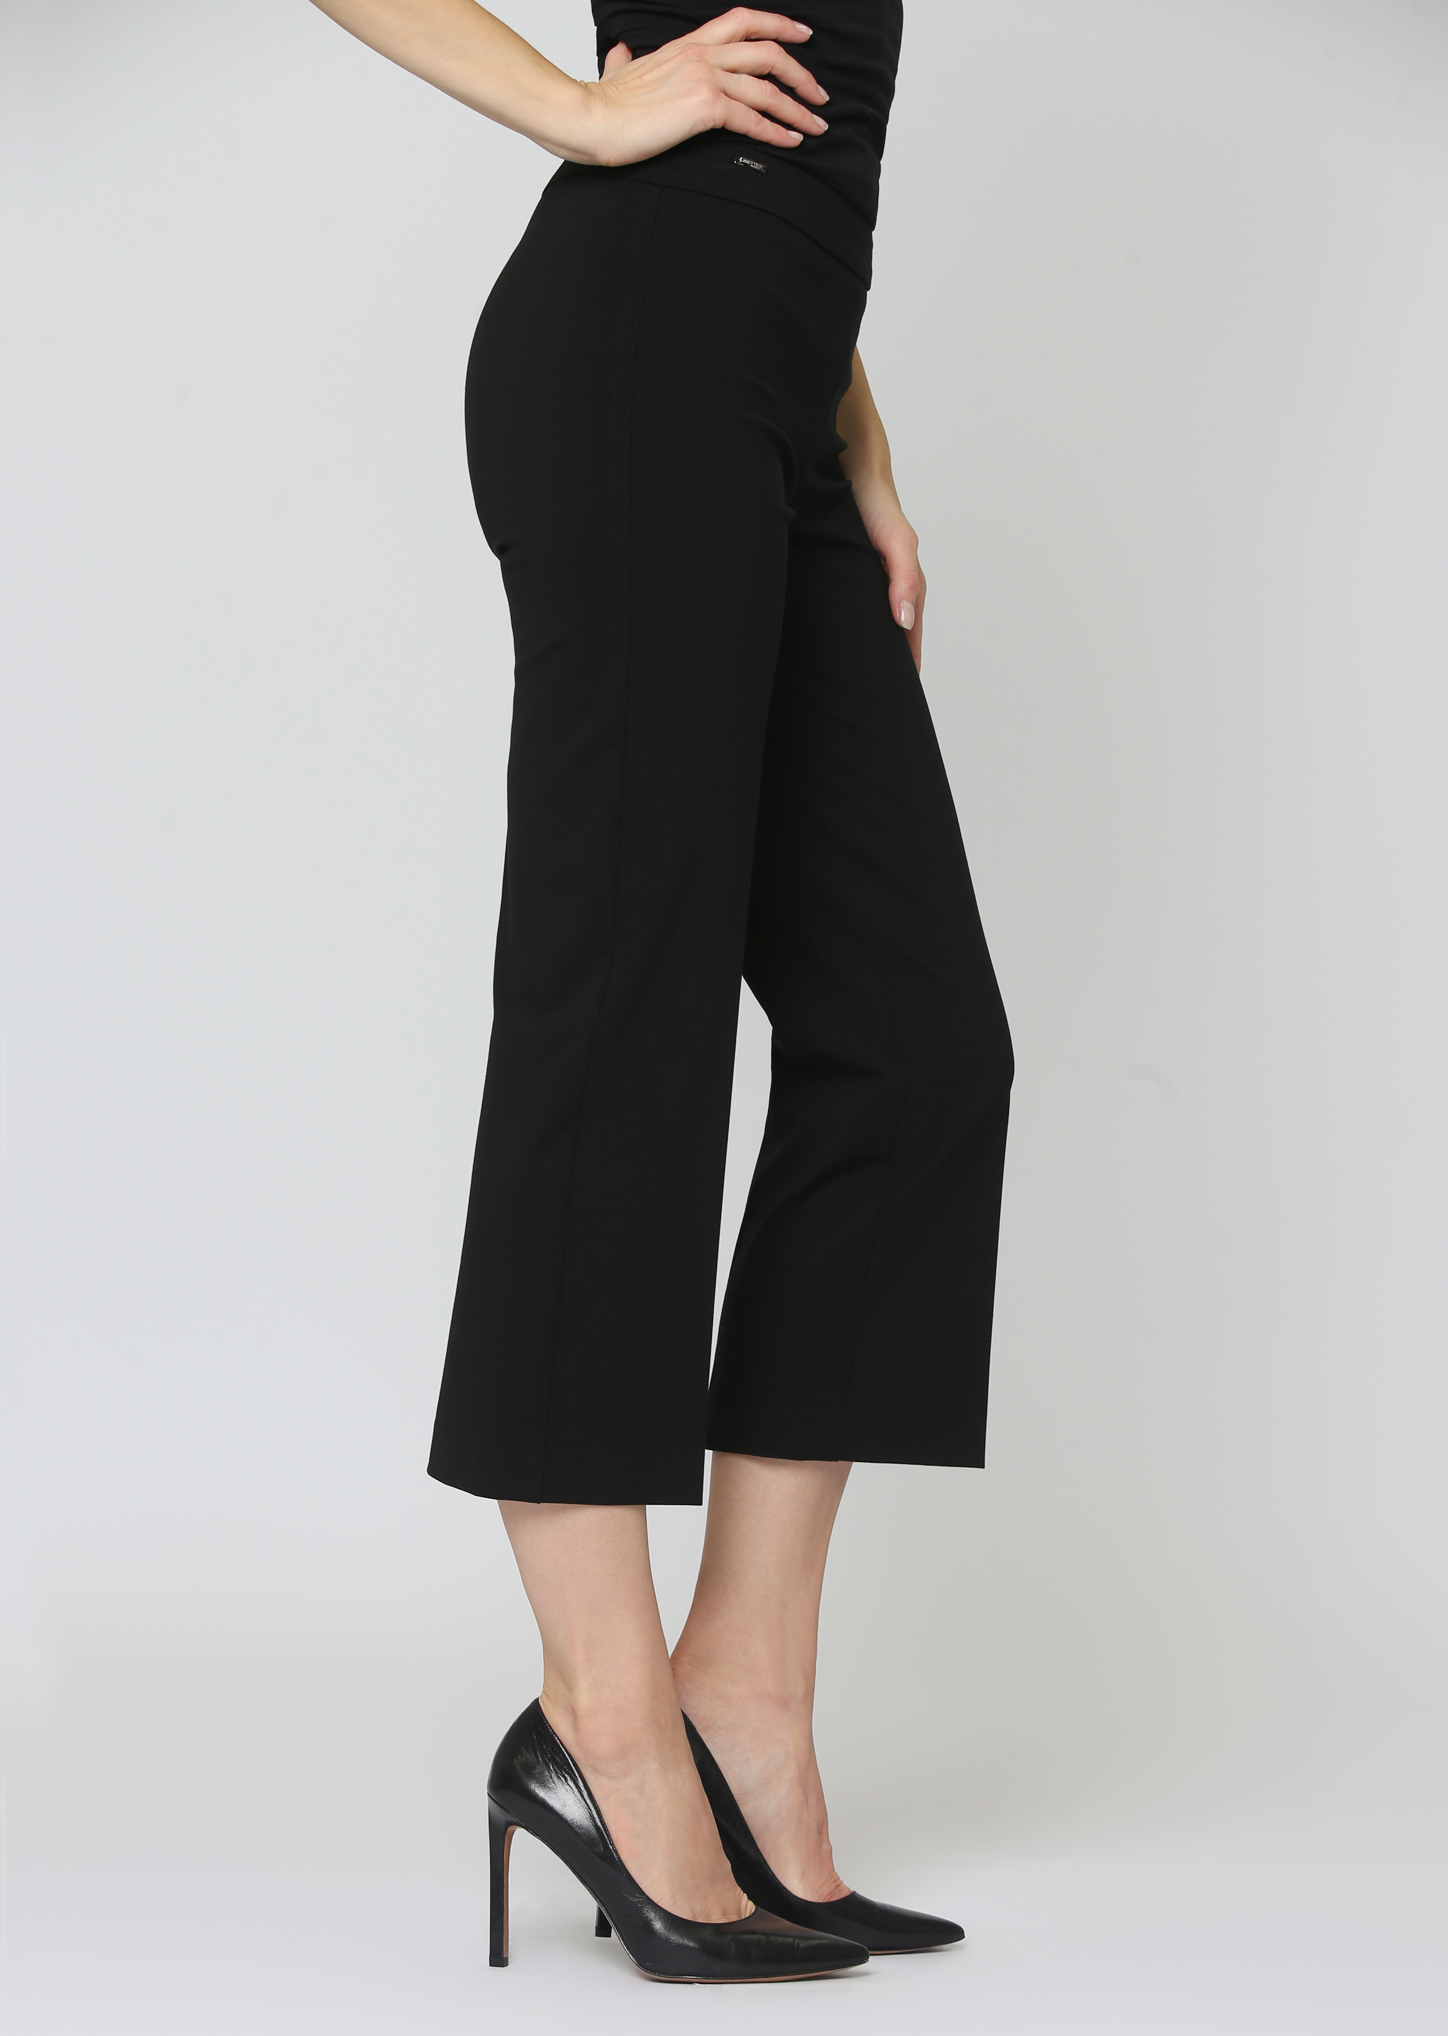 Lisette L. Crop Wide Leg Trouser Style 176636 Kathryne PDR Color Black